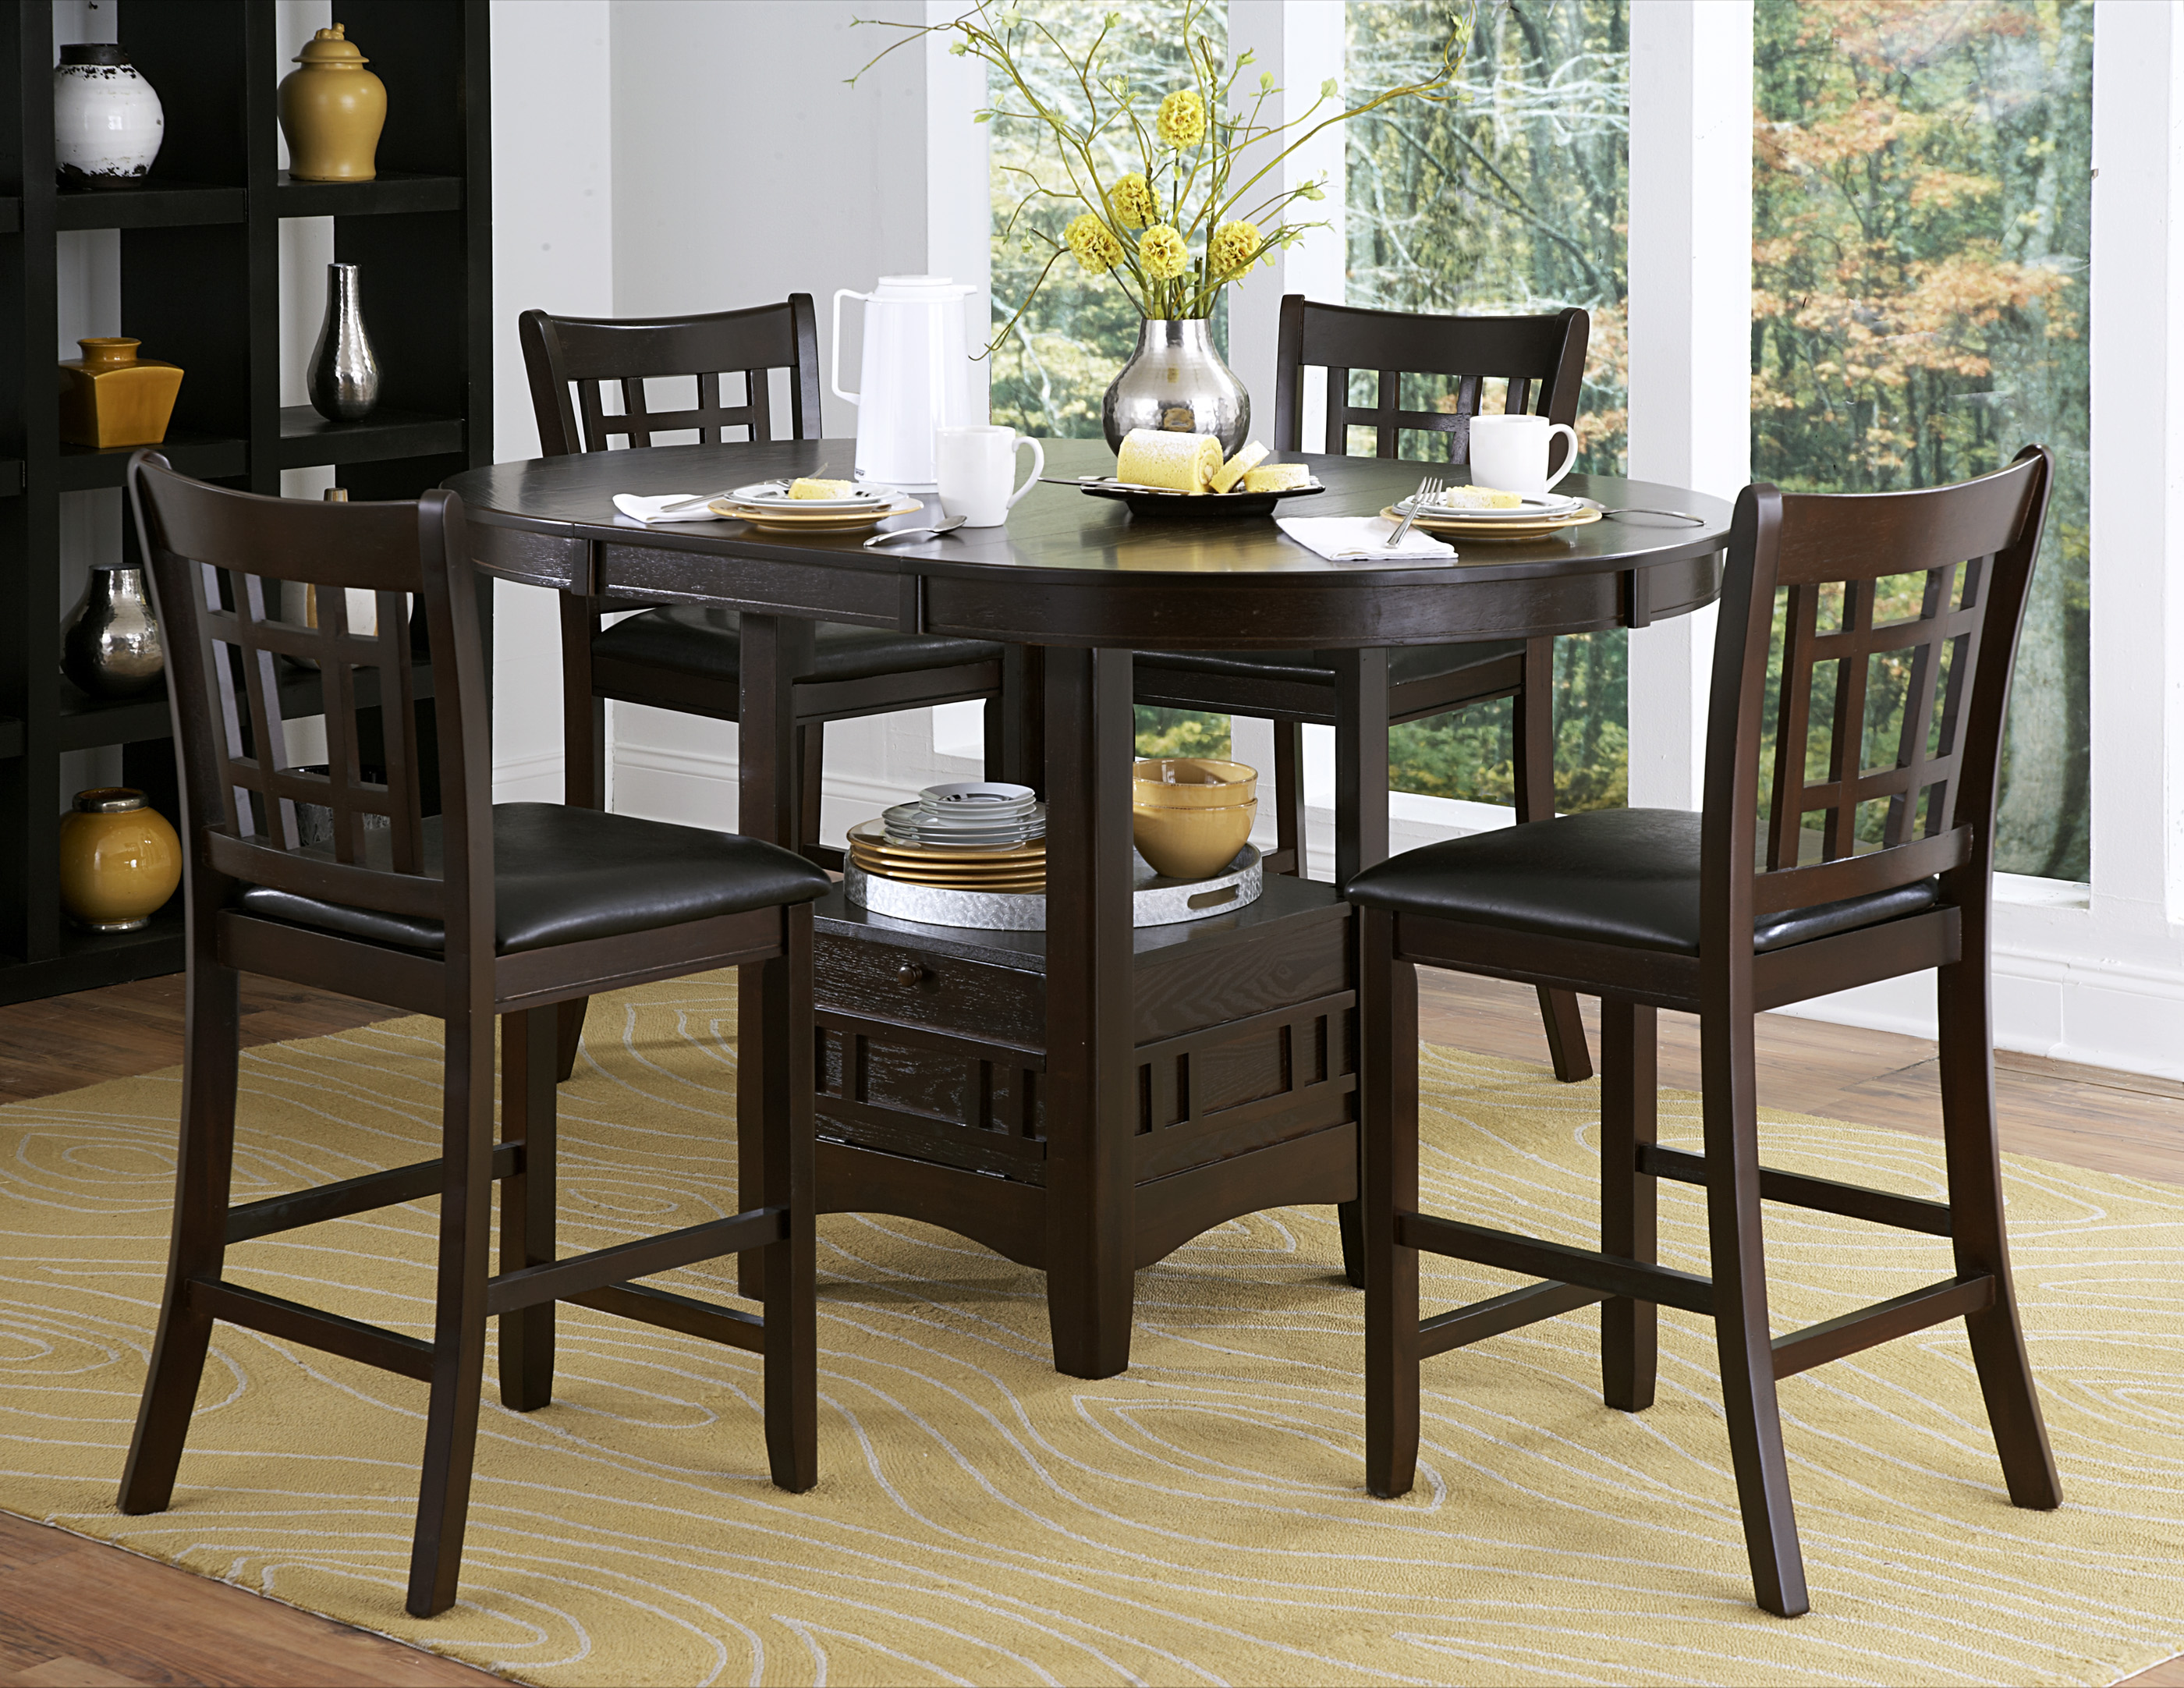 5pc counter height dining room set dallas tx dining room sets